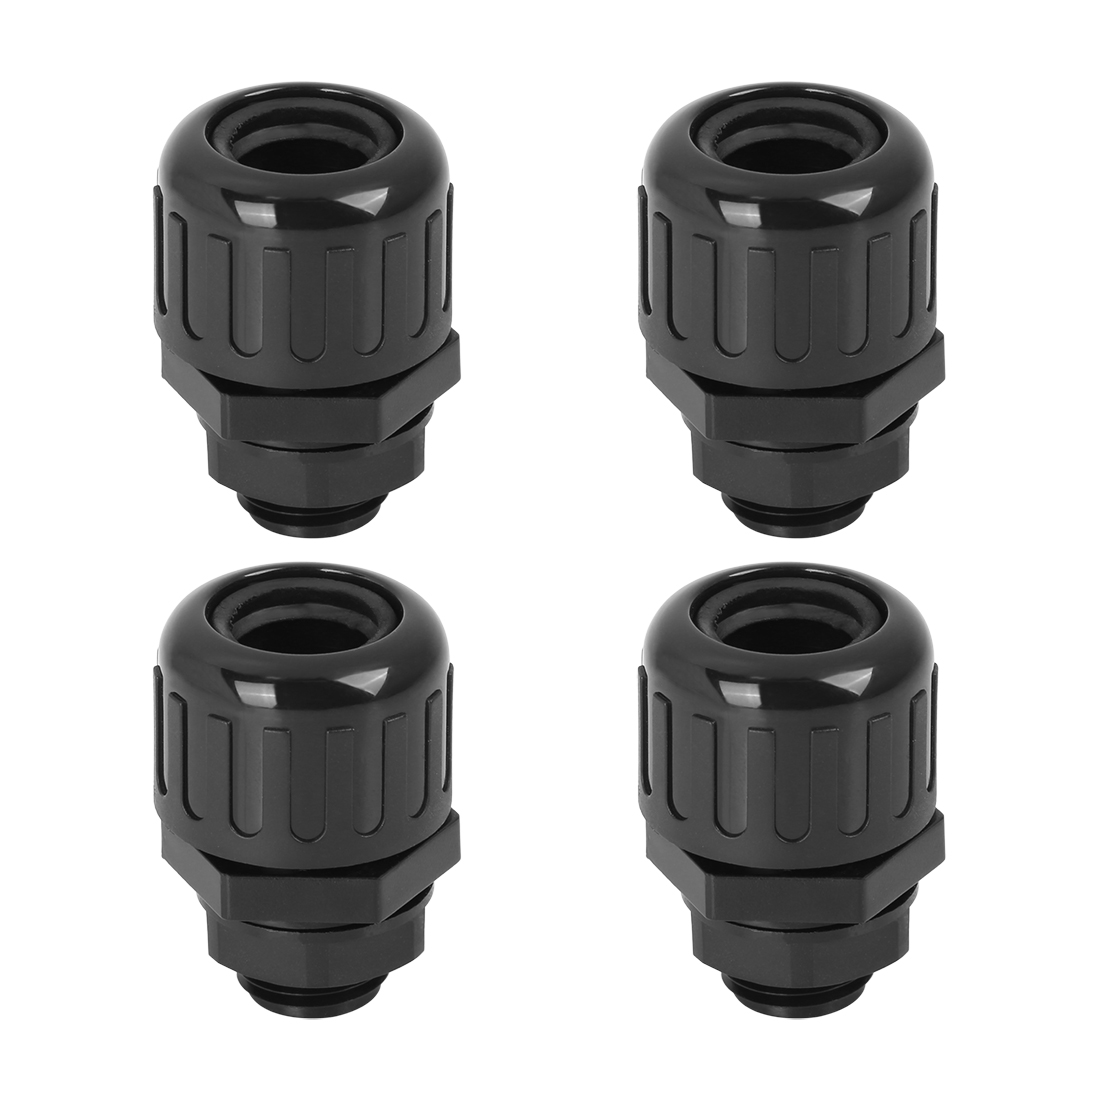 Cable Gland Waterproof Nylon Plastic Connectors with Lock Nut and Gaskets 4pcs